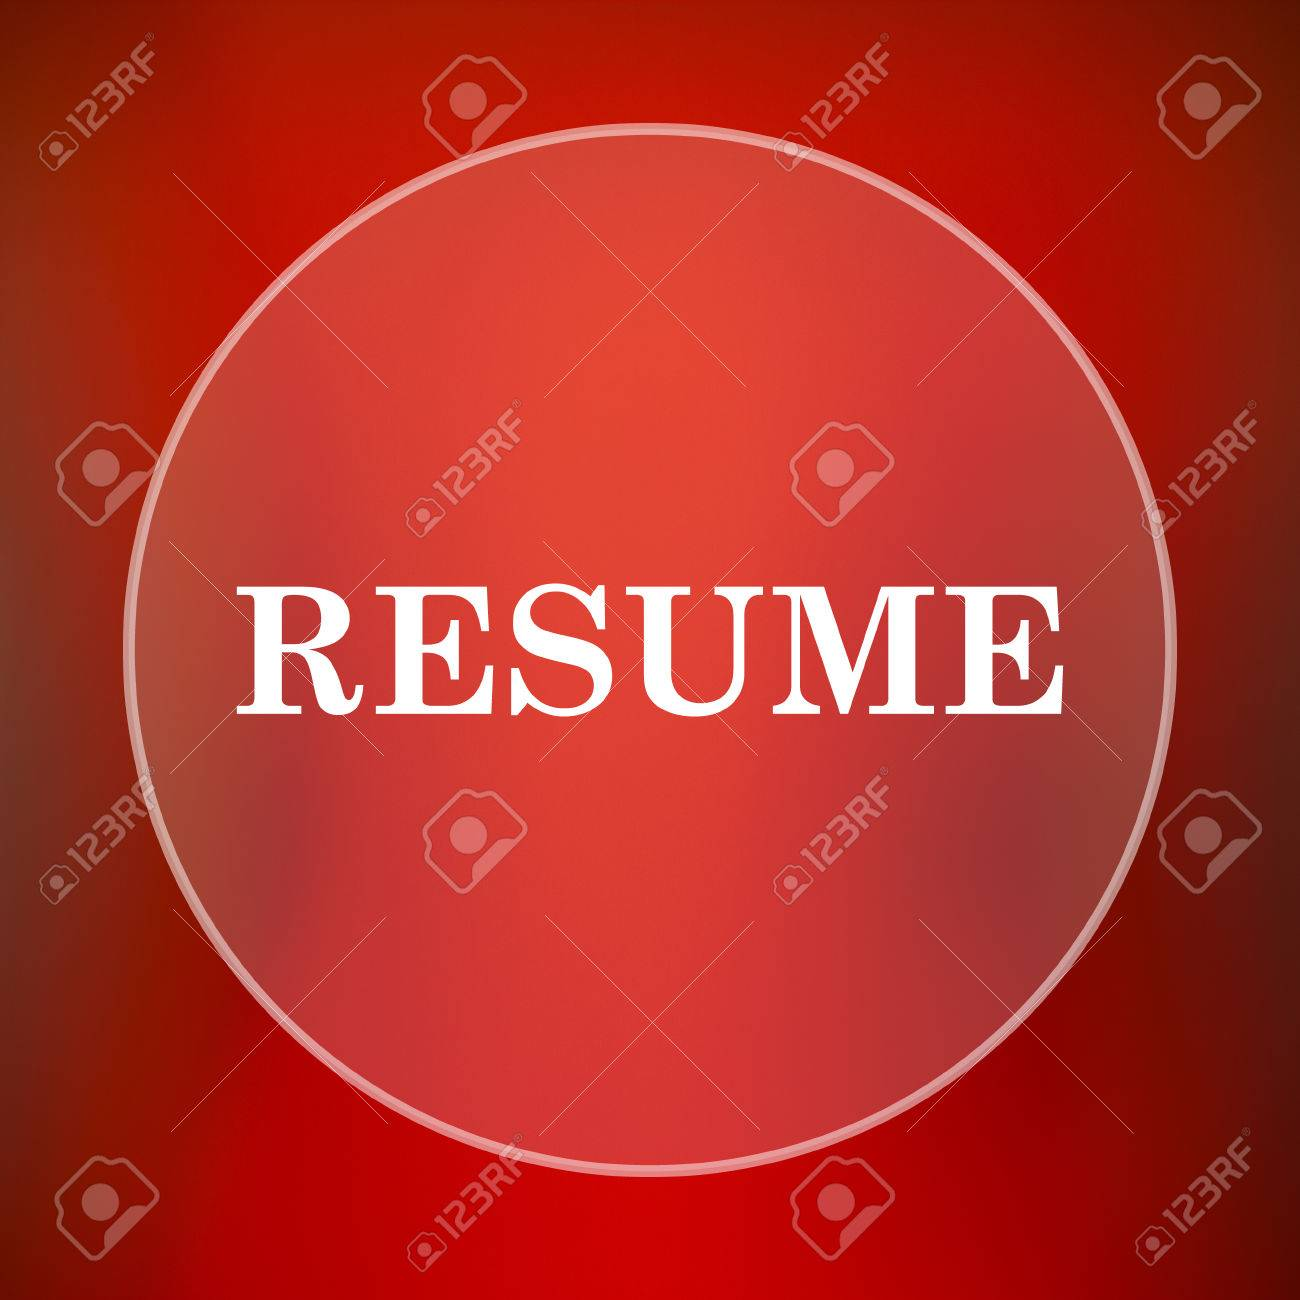 resume icon internet button on red background stock photo resume icon internet button on red background stock photo 55164321